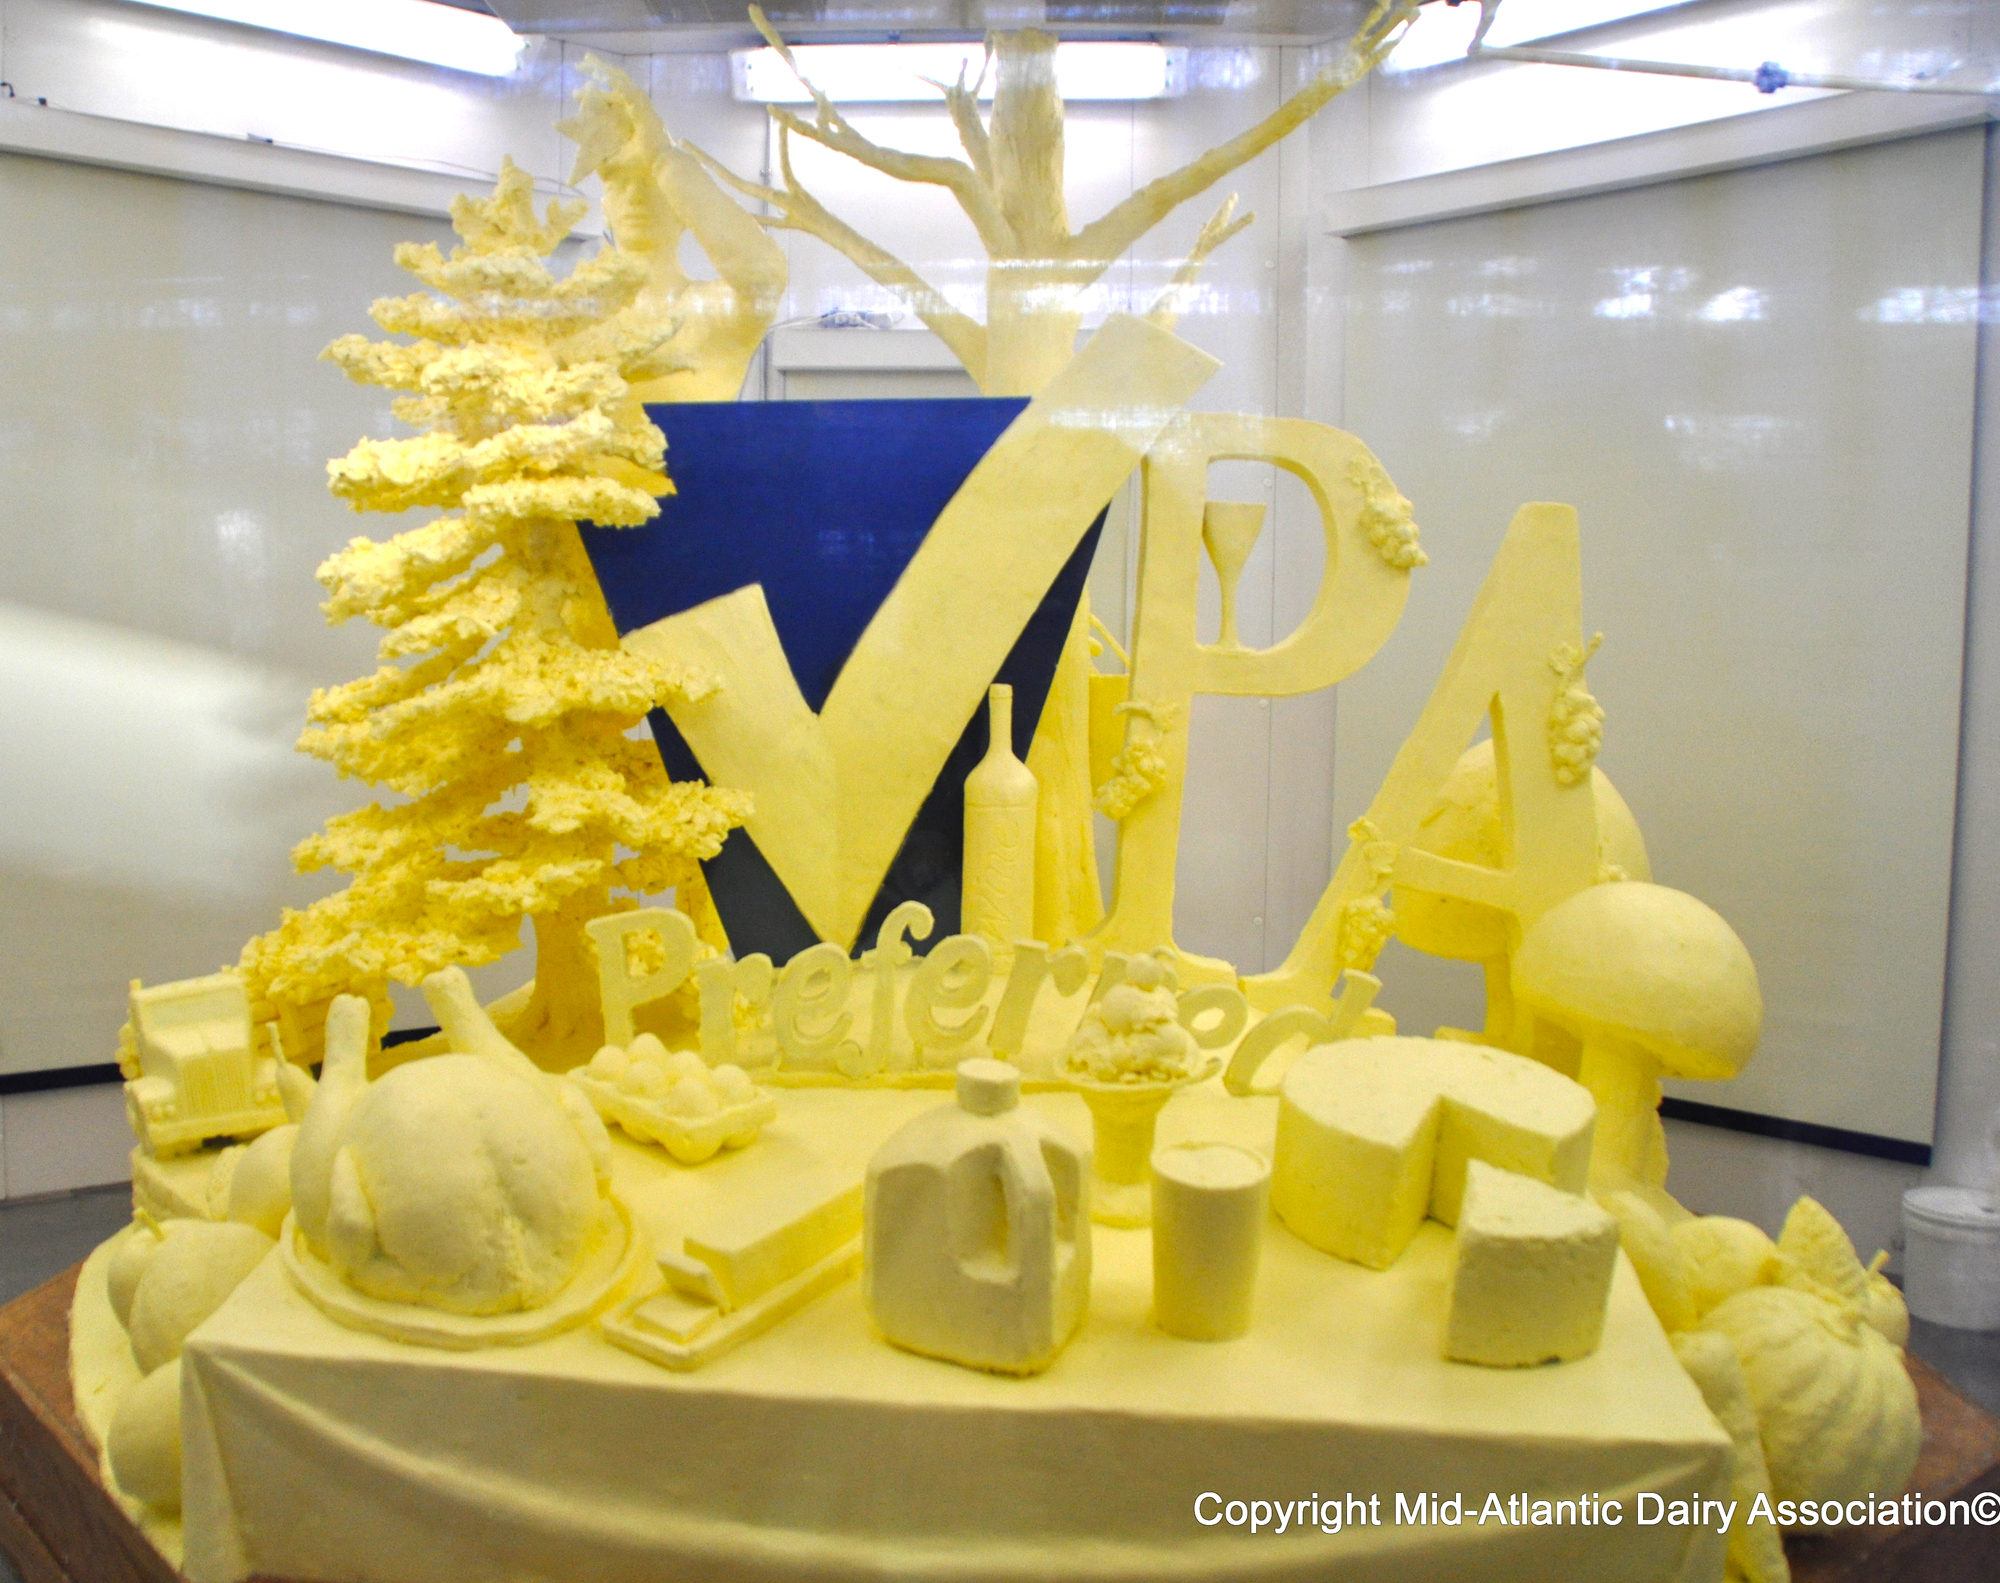 2013 PA Farm Show Marks Opening With 1,000-pound Butter